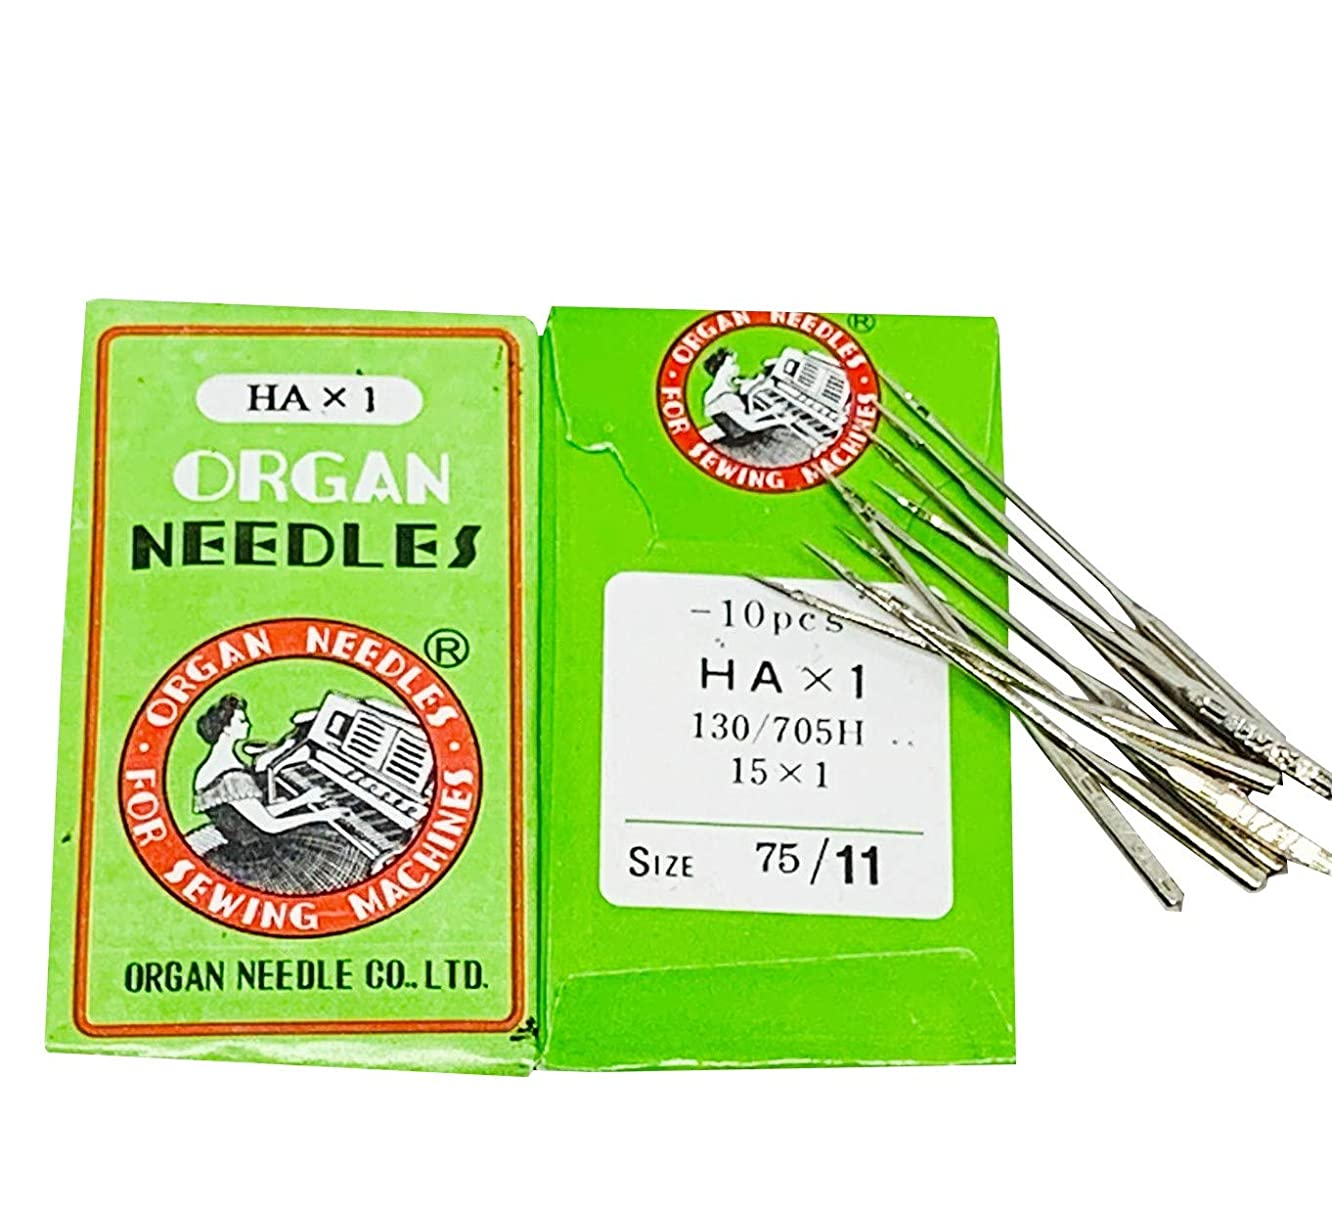 Organ Sewing Machine Needles Home-use Size 75/11